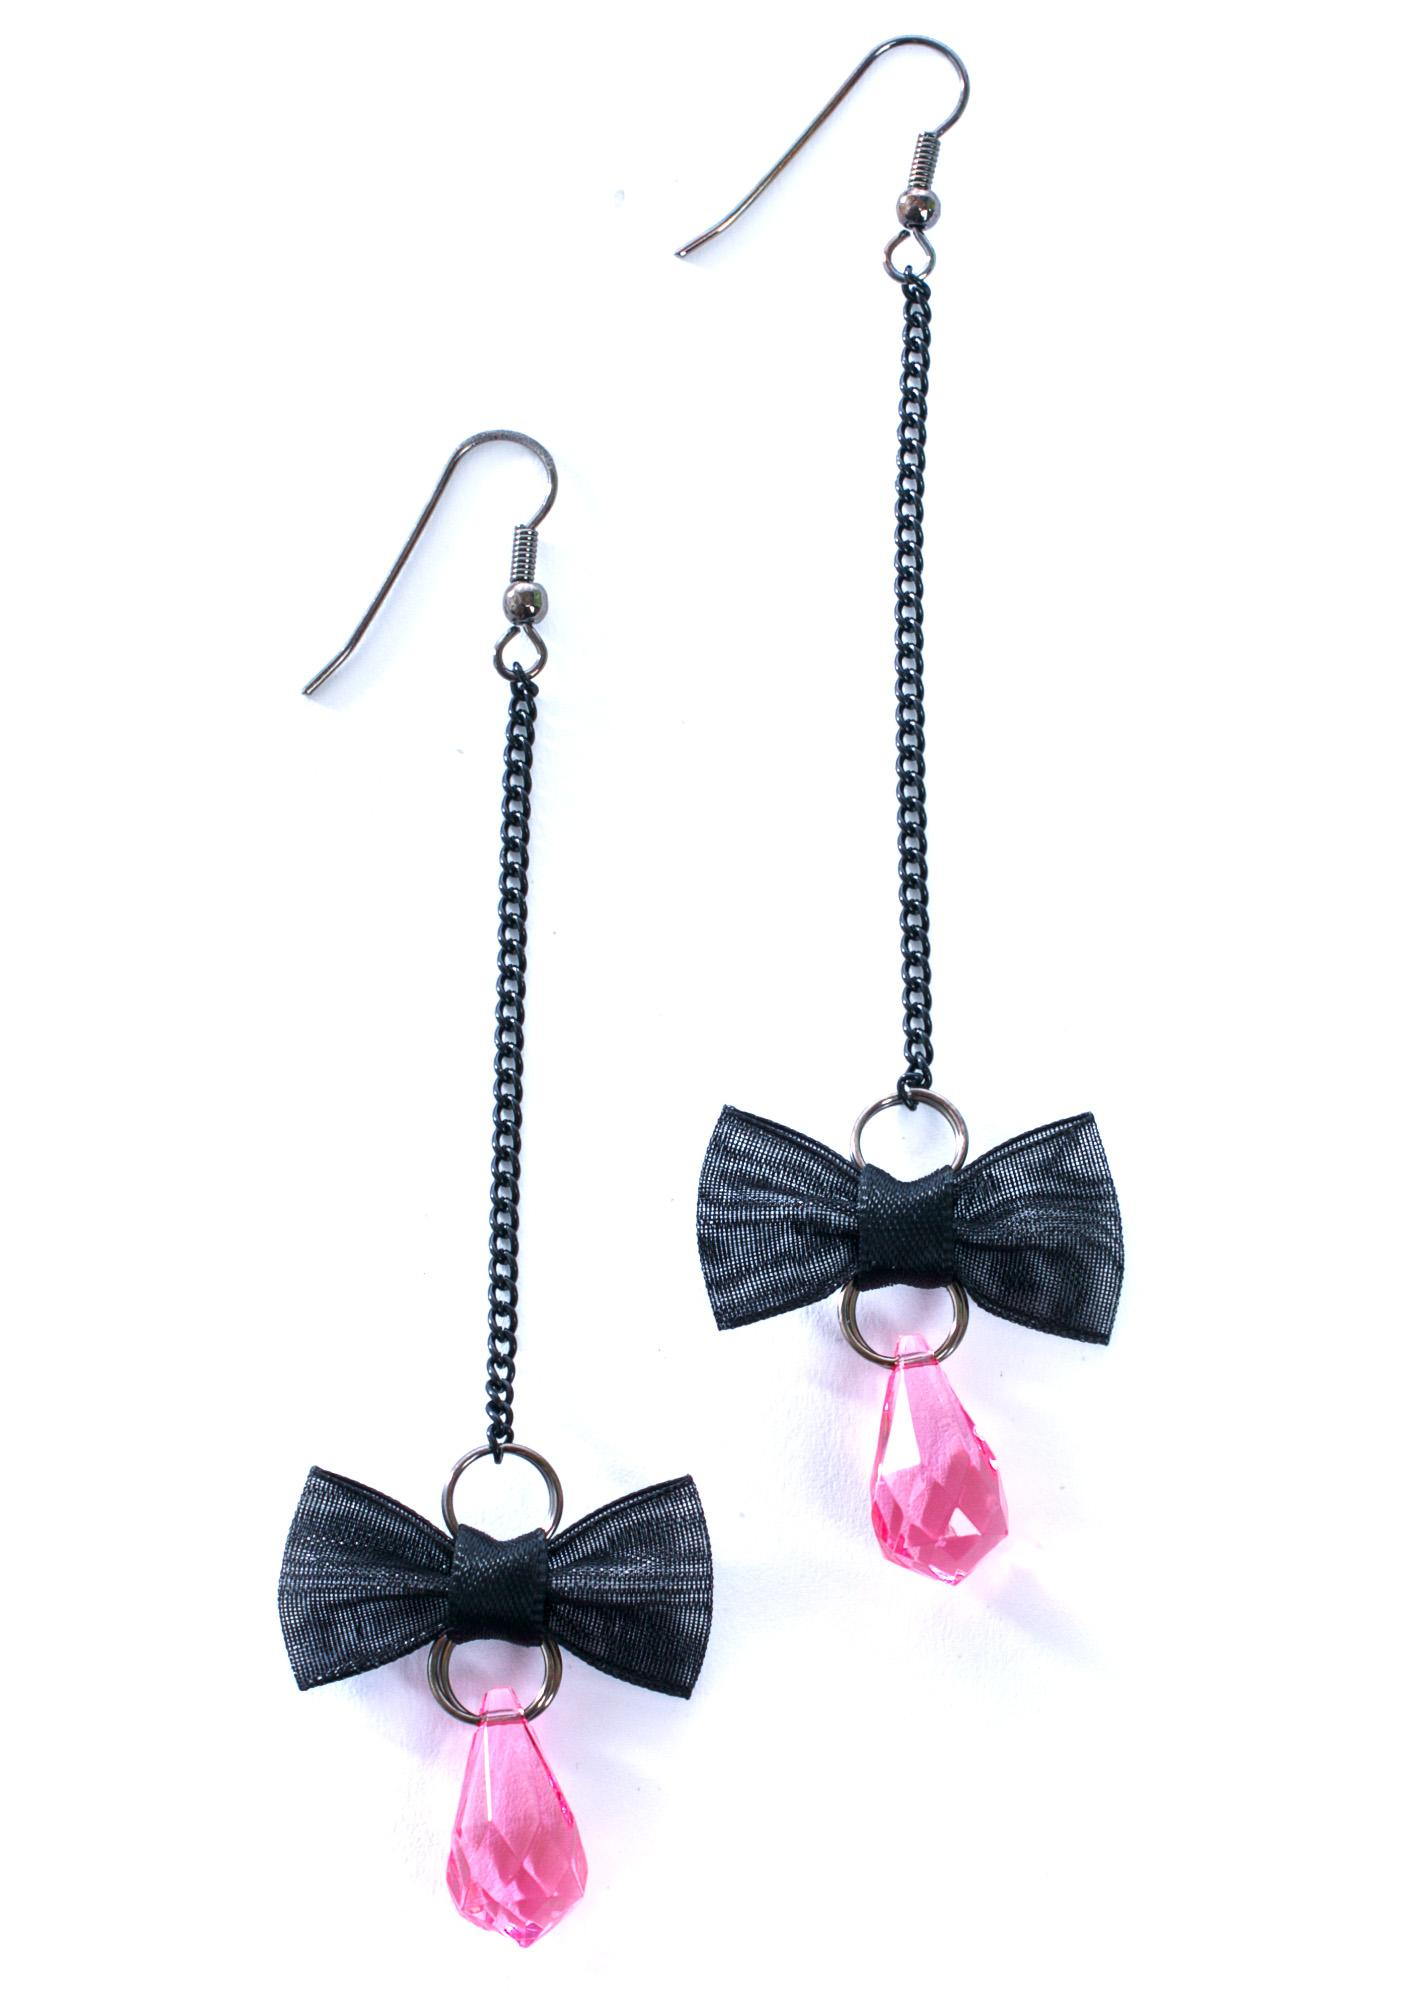 Take A Bow Earrings